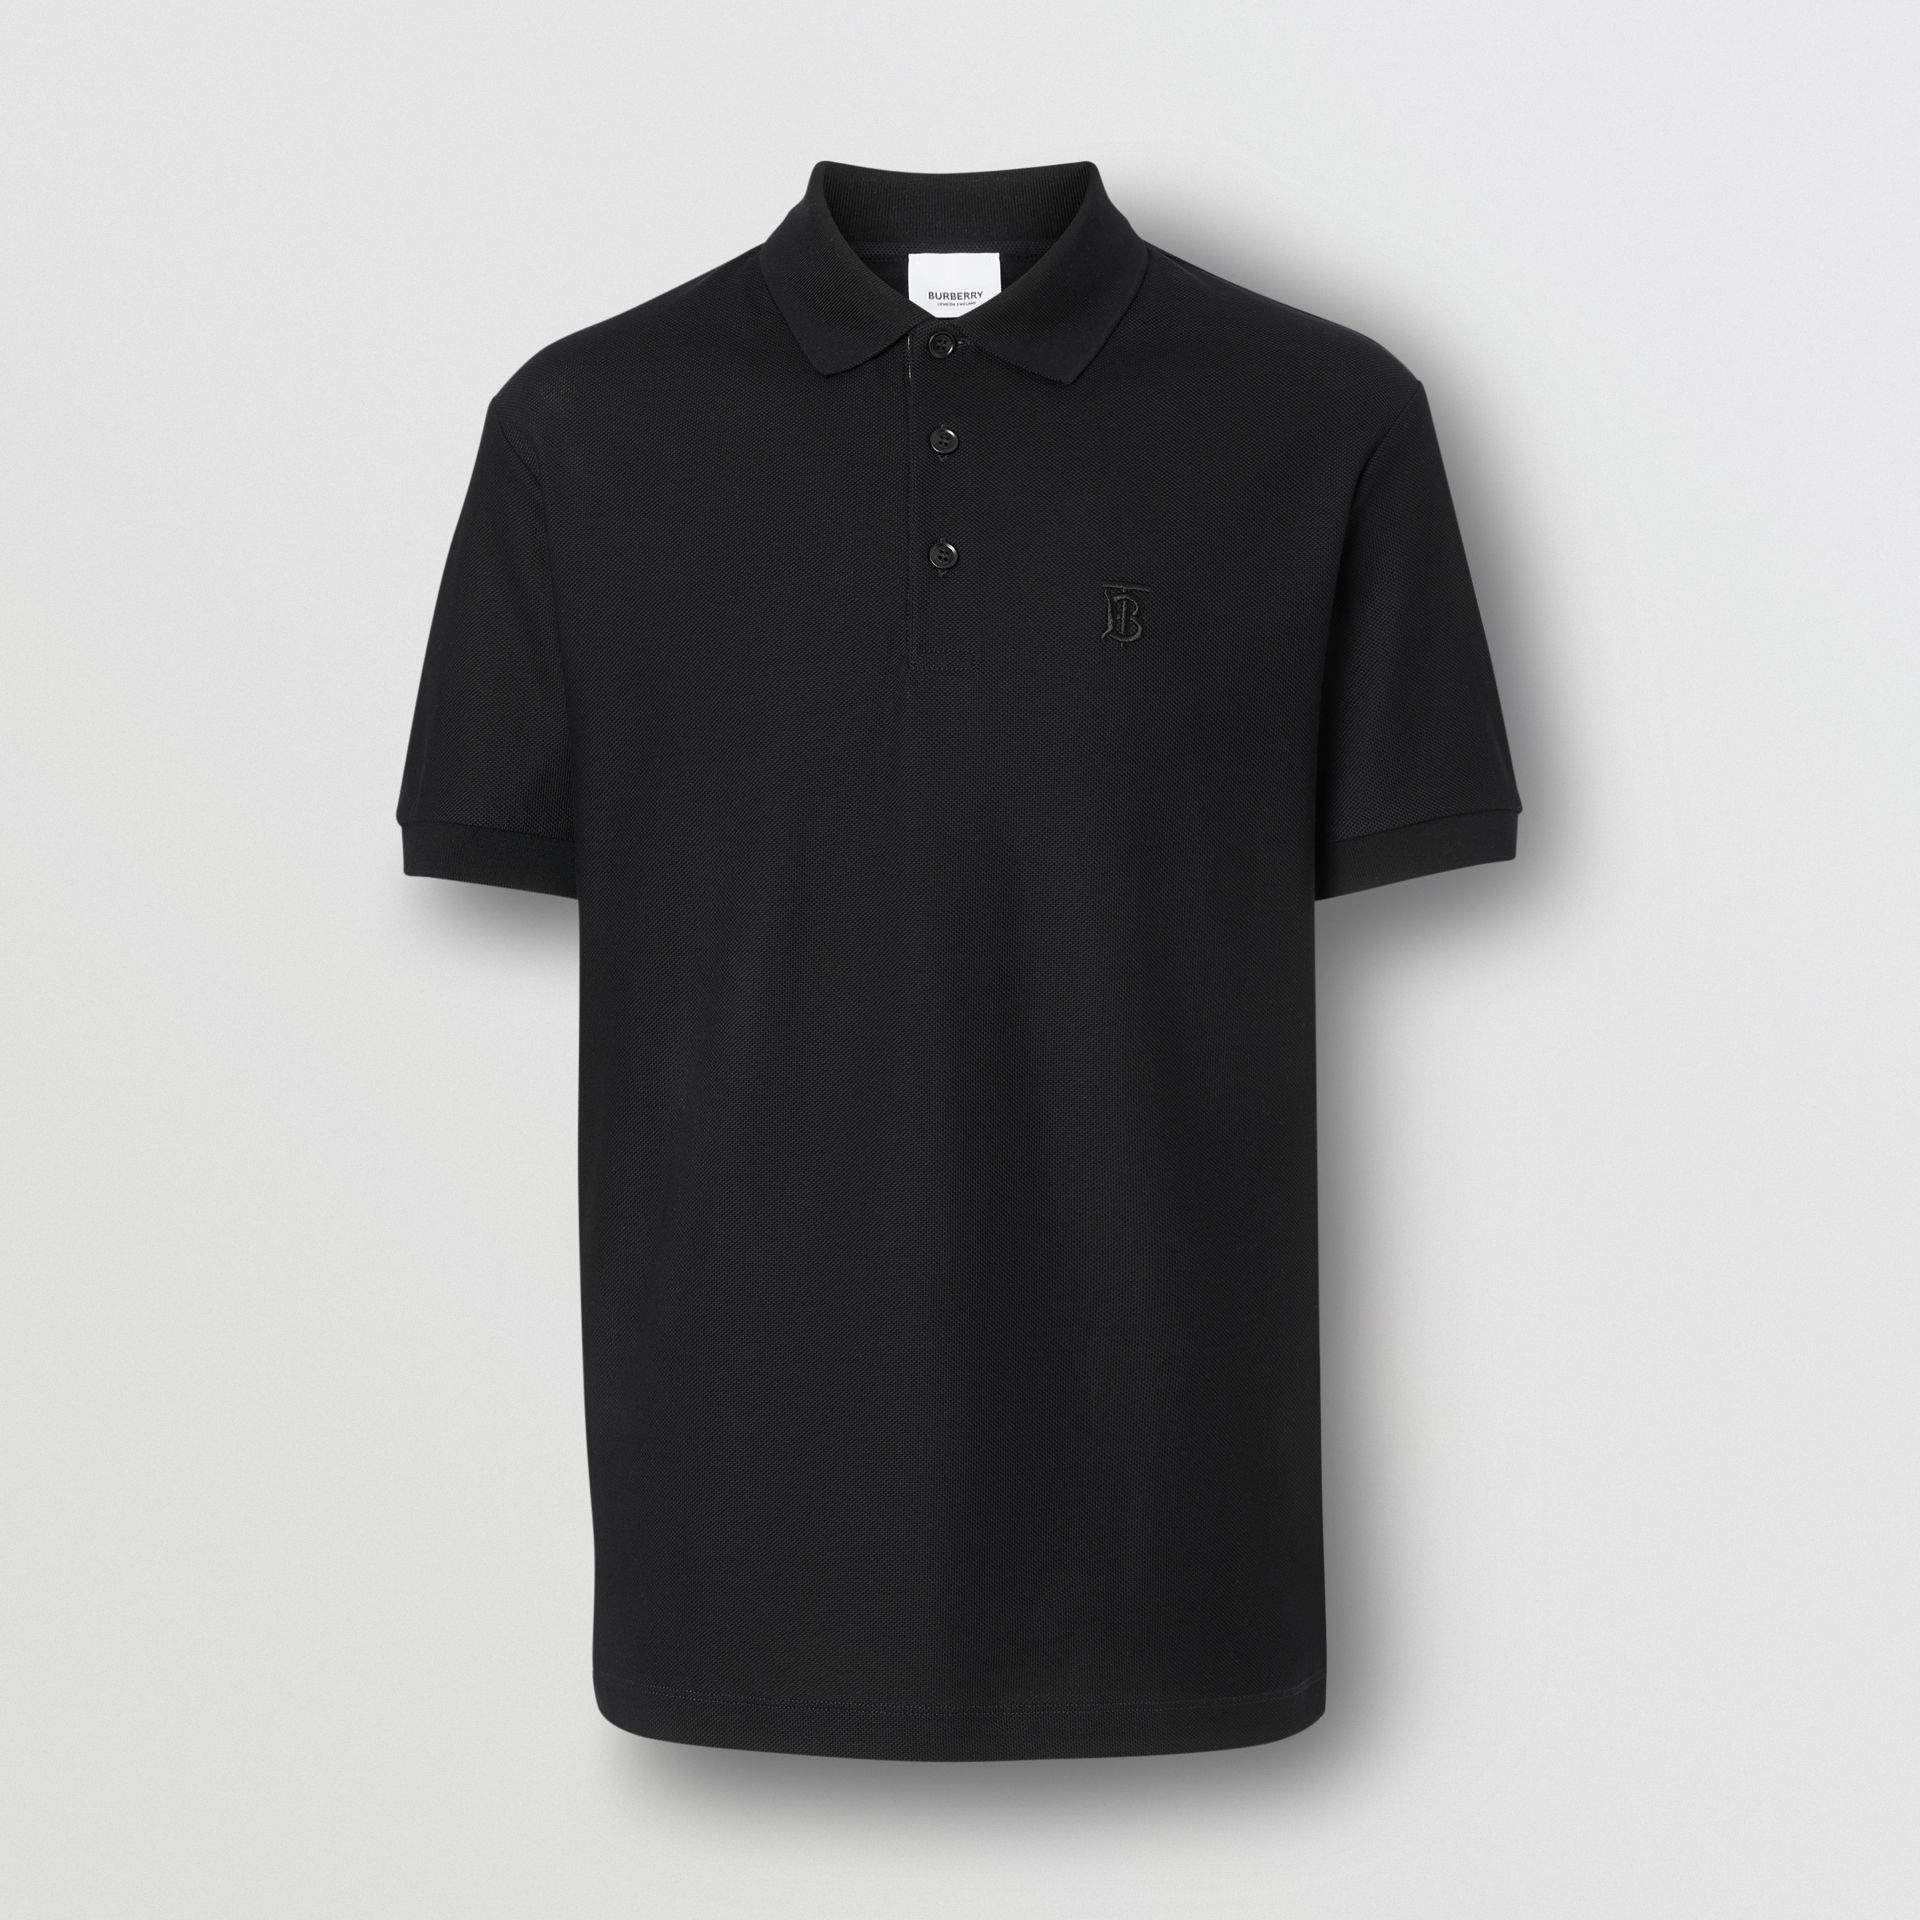 Monogram Motif Cotton Piqué Polo Shirt in Black - Men | Burberry - gallery image 3